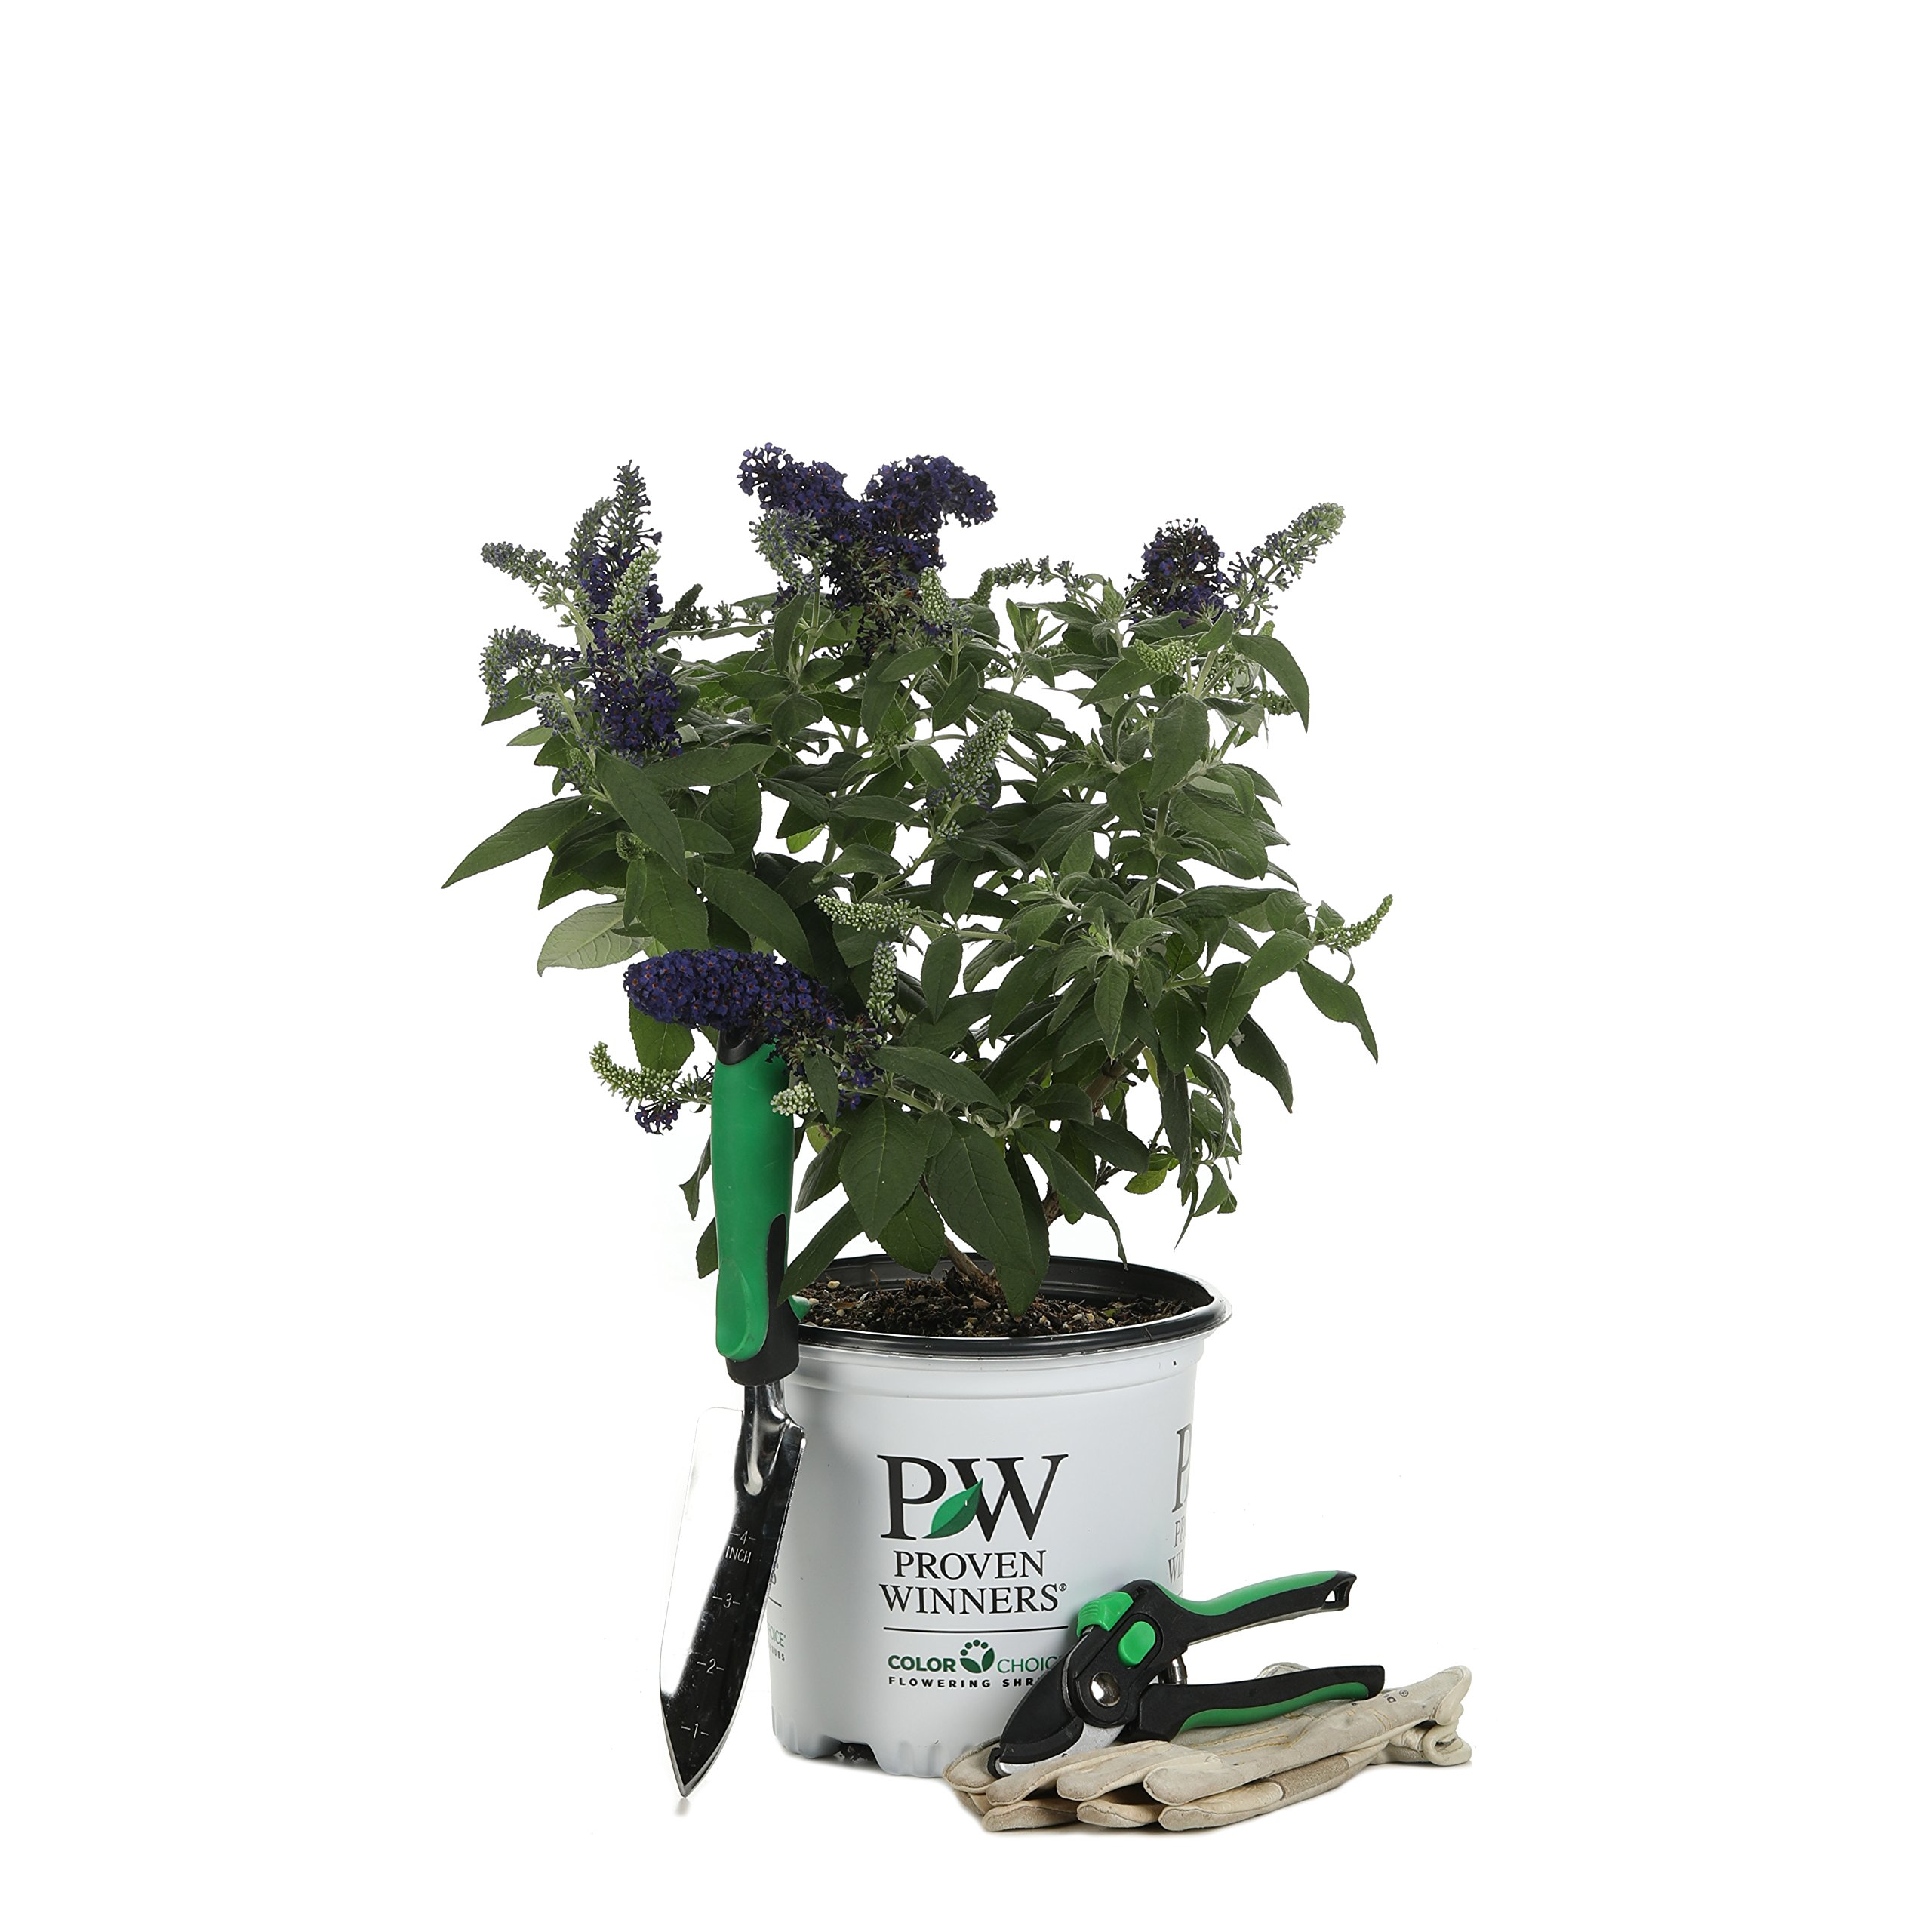 Pugster Blue Butterfly Bush (Buddleia) Live Shrub, Blue Flowers, 1 Gallon by Proven Winners (Image #8)